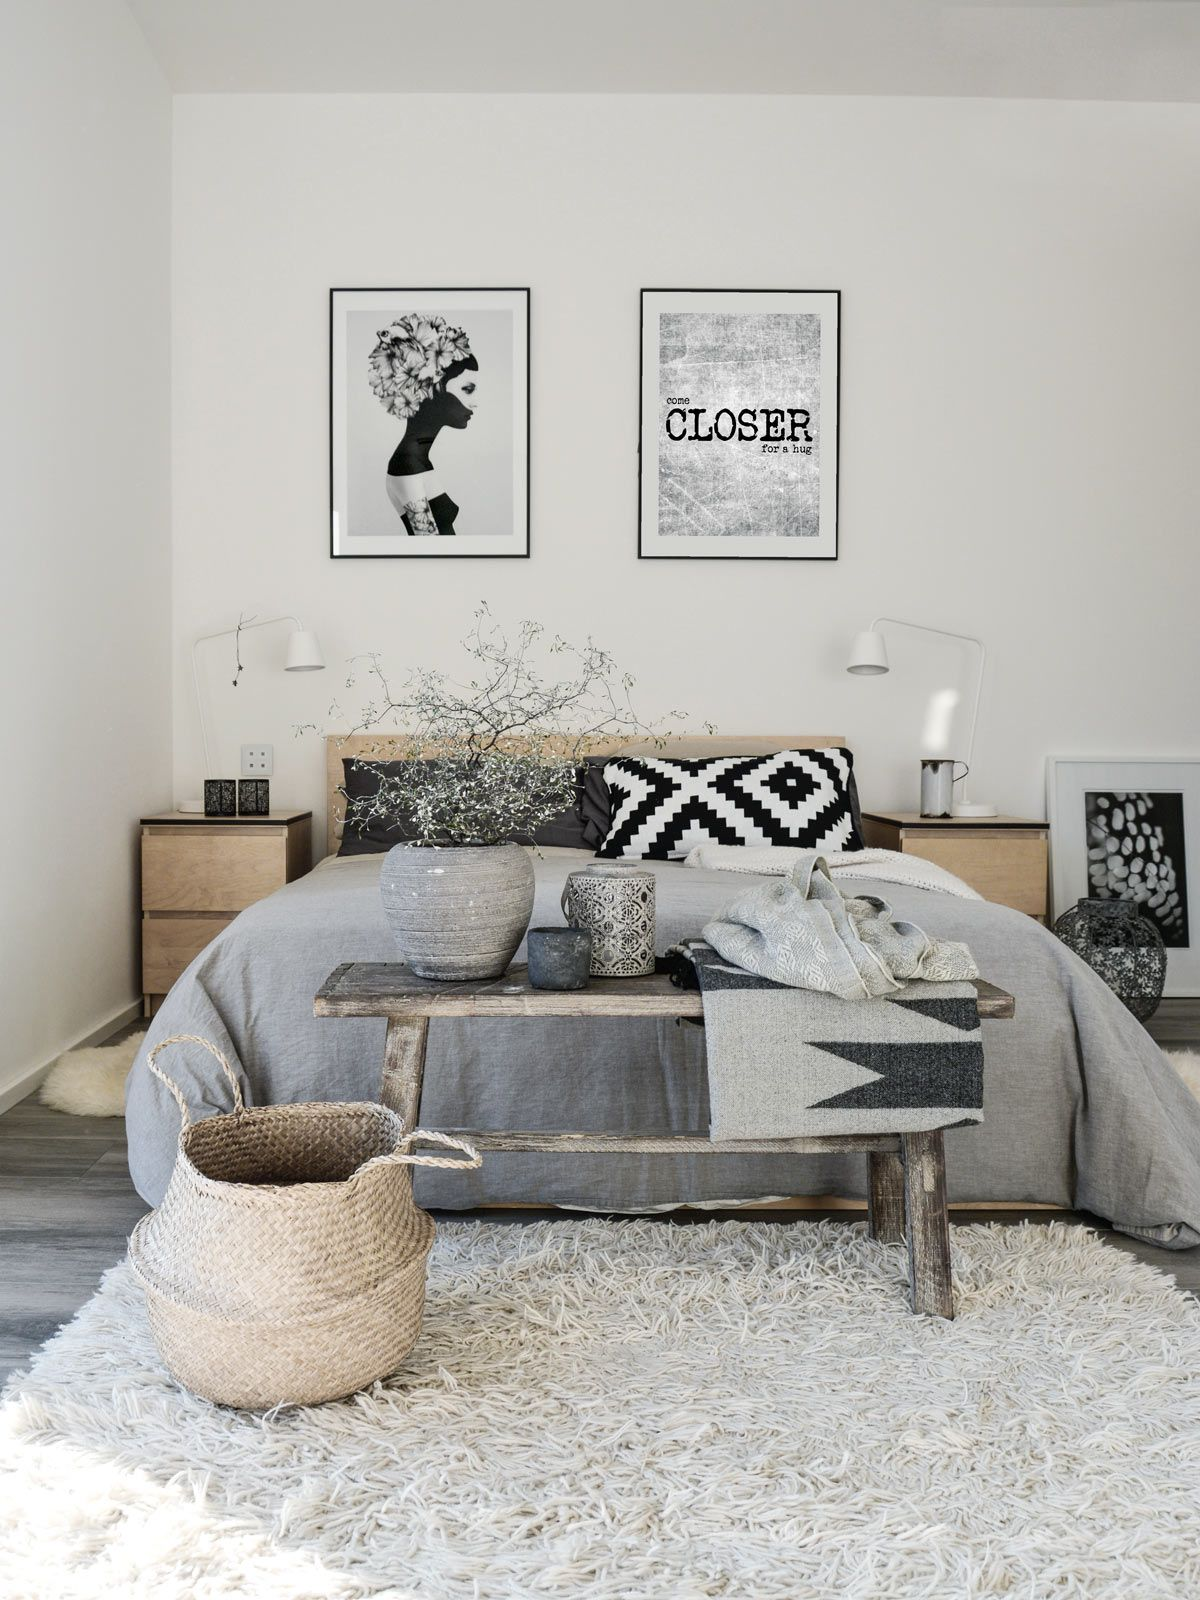 Sofas, design and search on pinterest